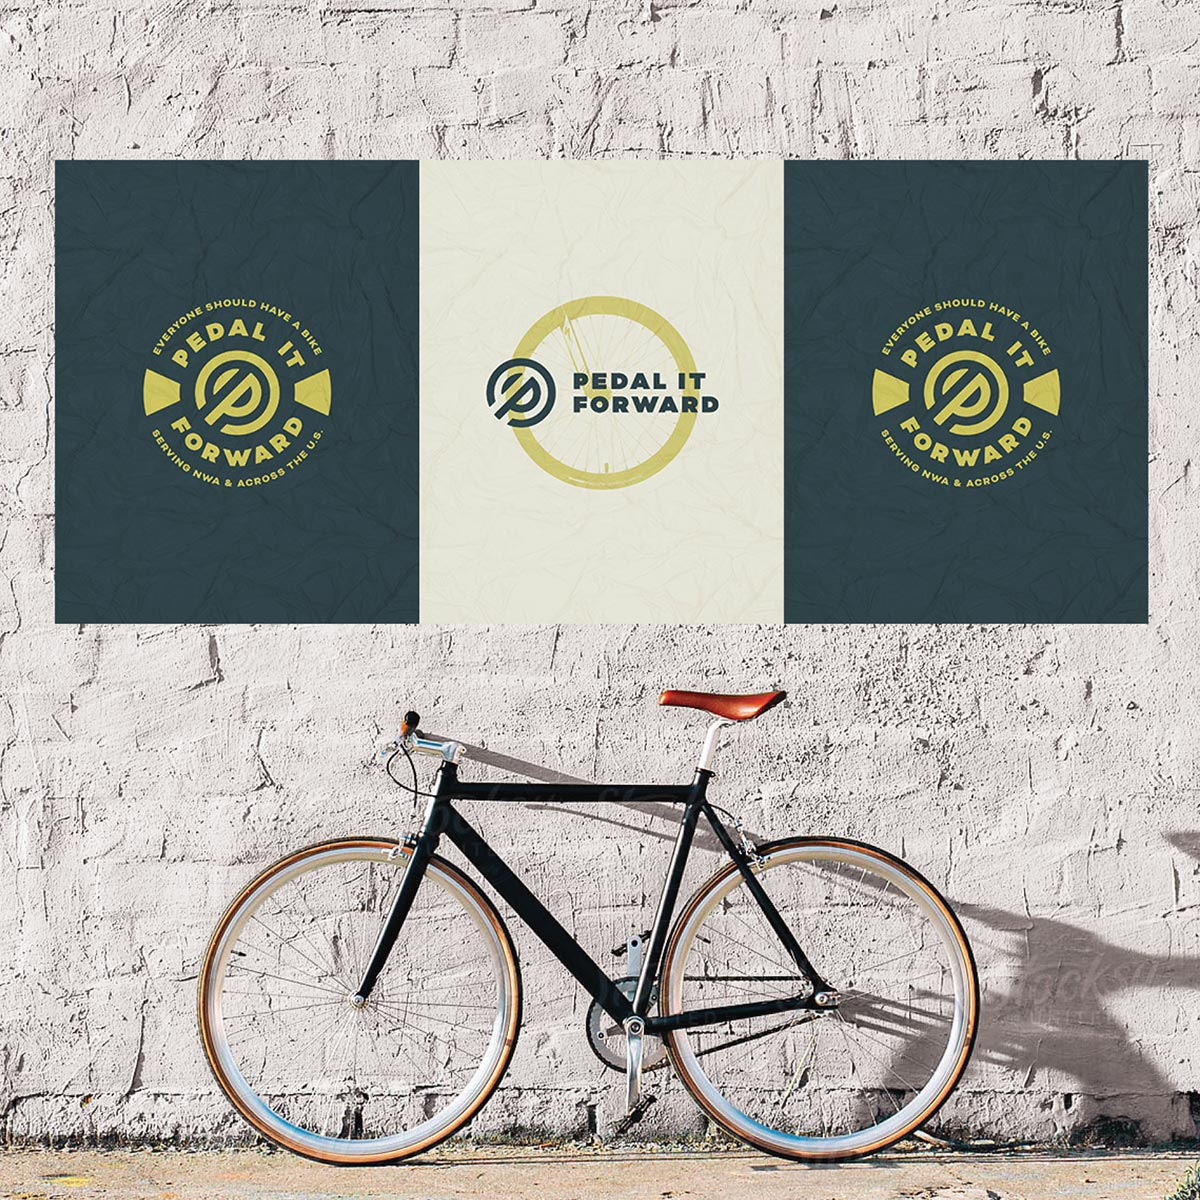 pedal it forward posters on wall with bike